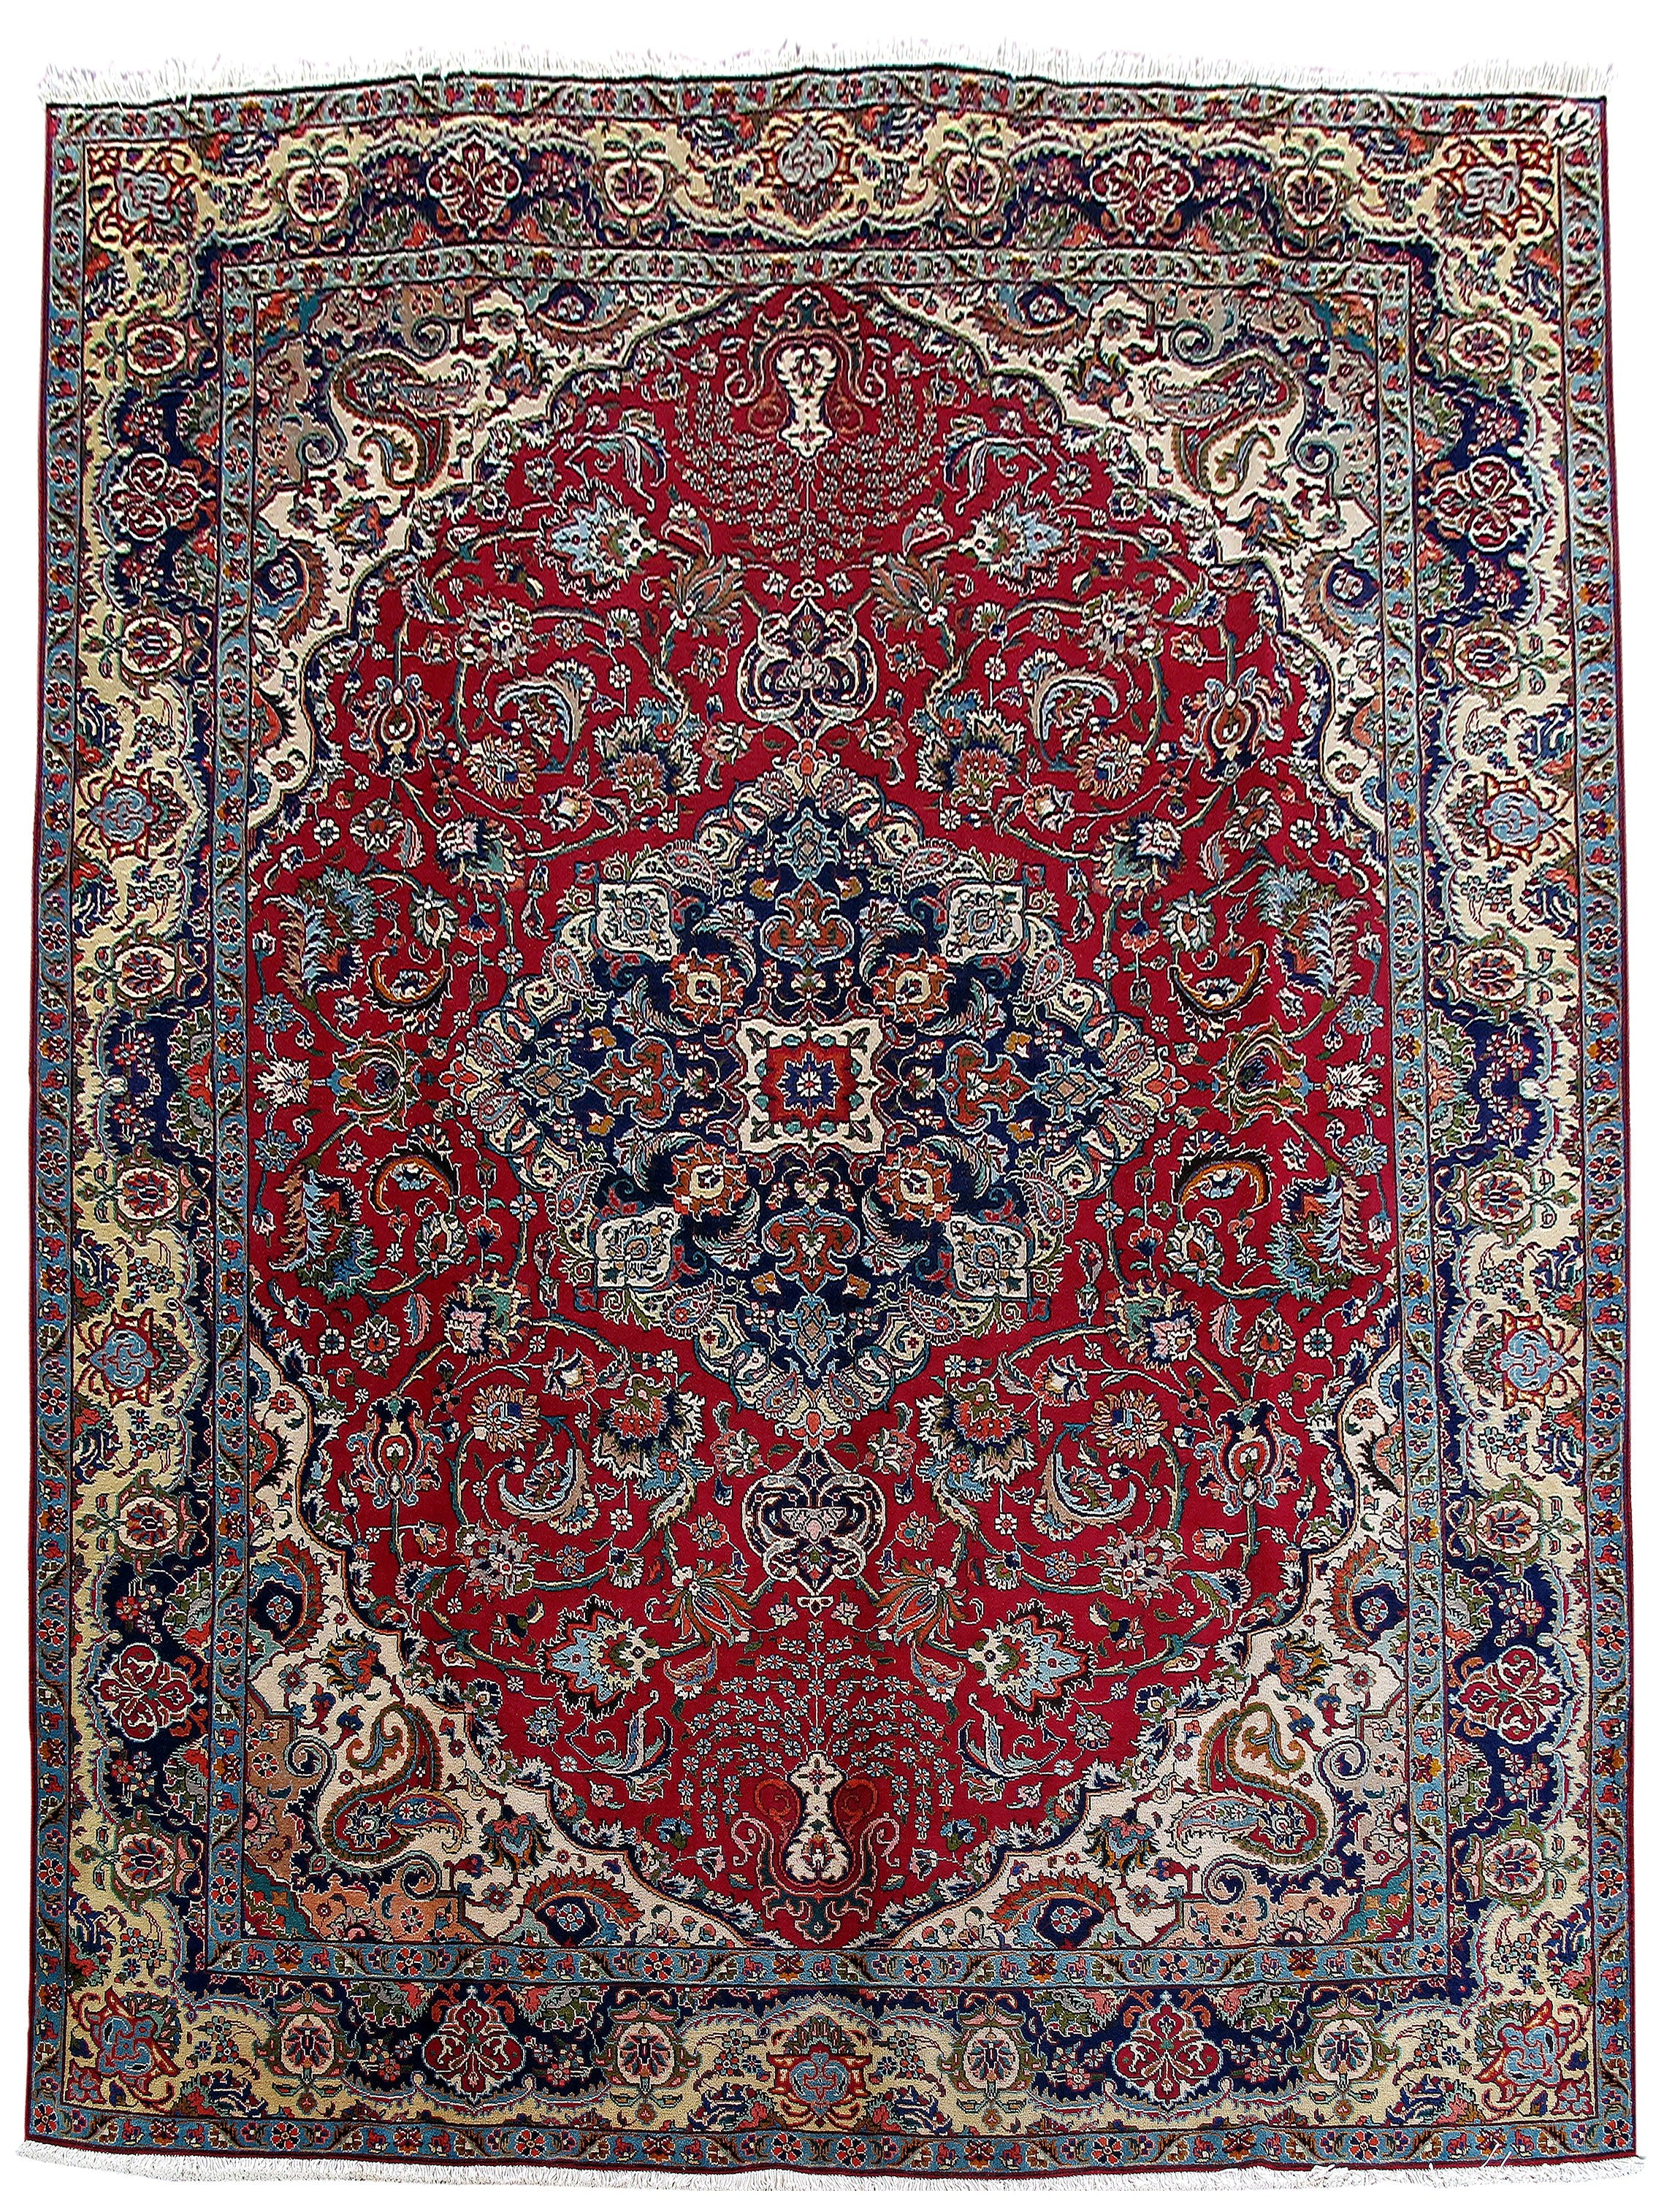 Authentic Hand-Knotted 10x13 Persian Tabriz Rug - Traditional